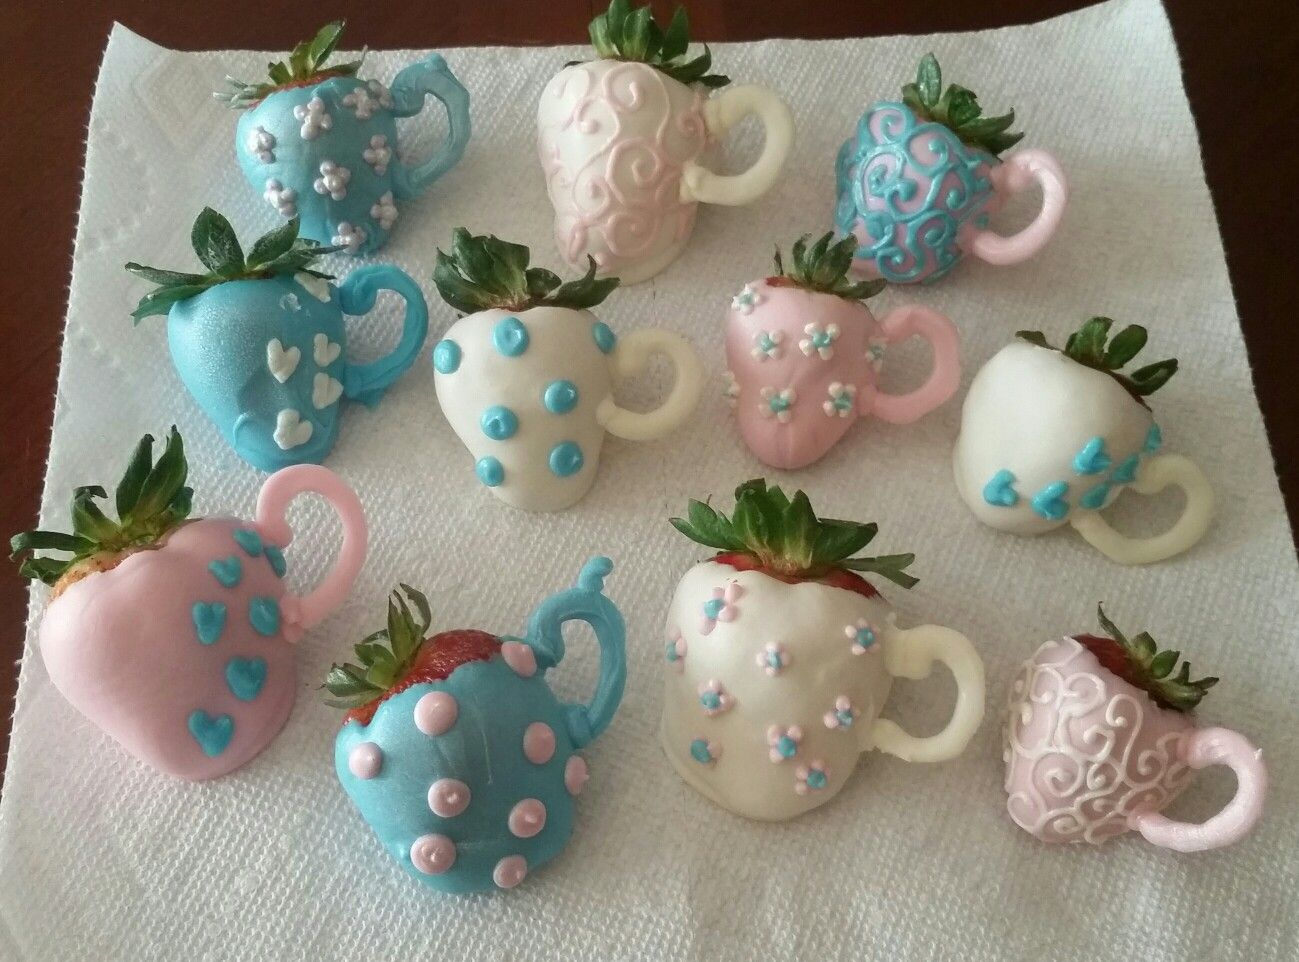 Teacup Strawberries Tea Time Desserts Made By Seveneves